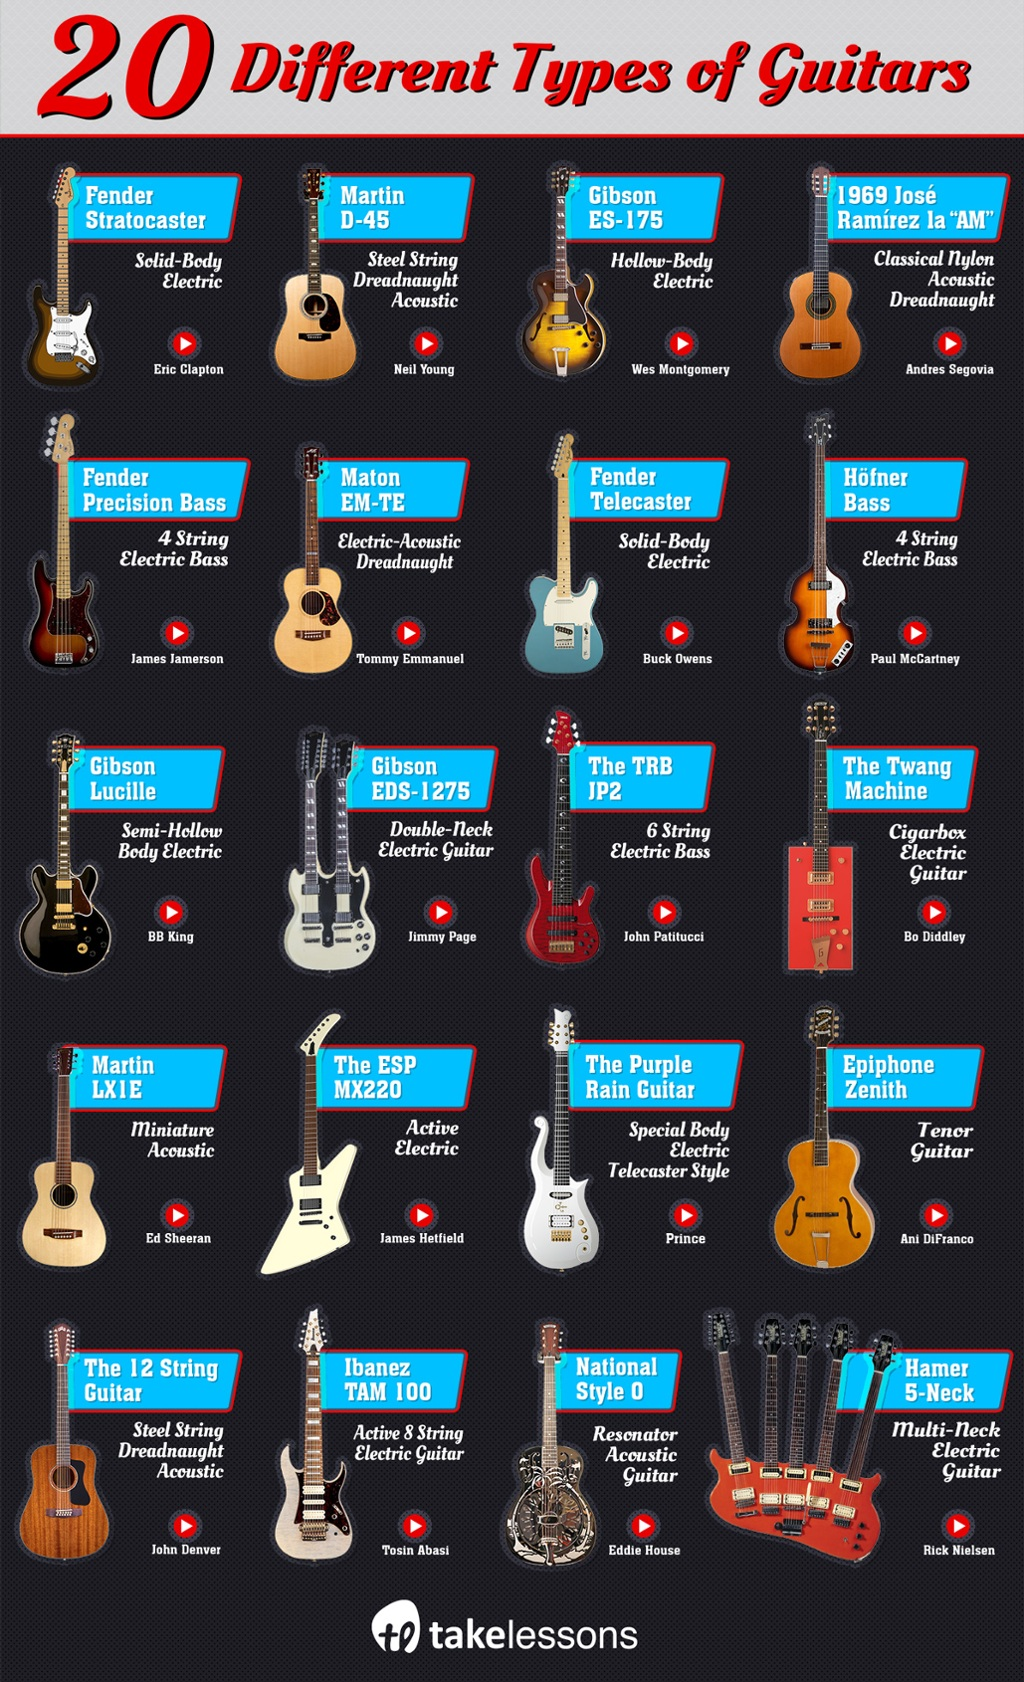 20-different-types-of-guitars